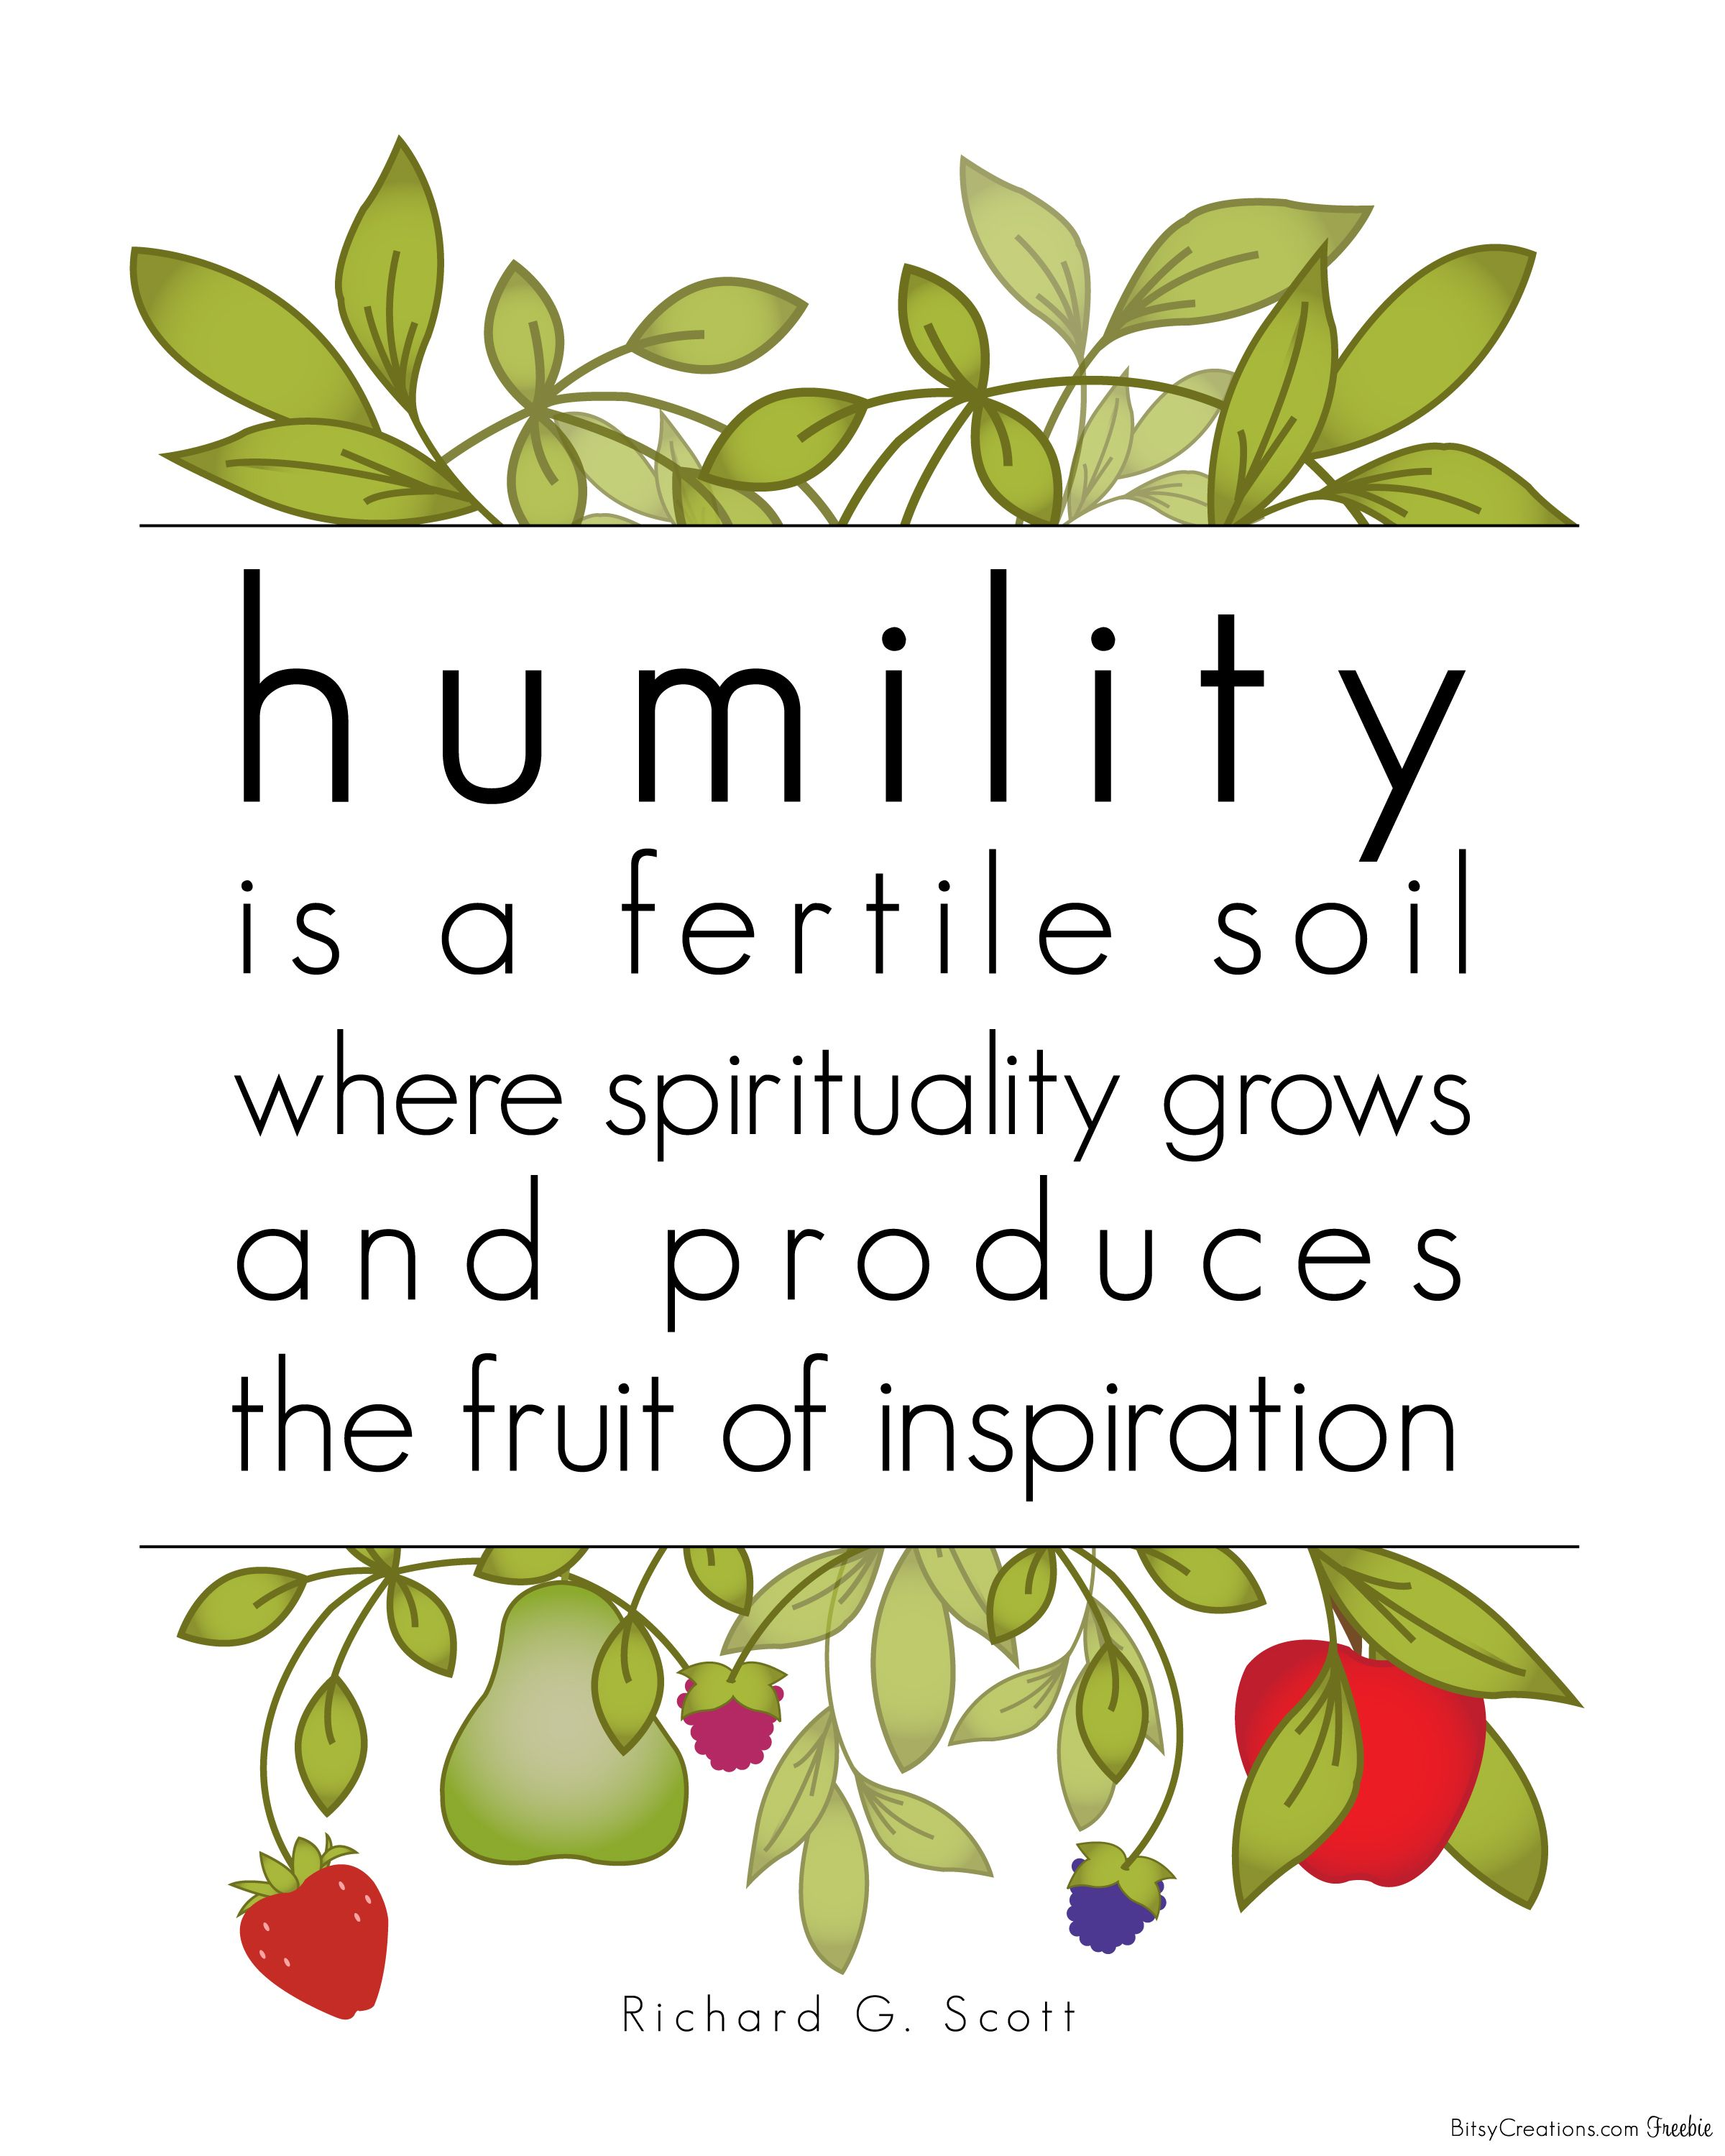 HUMILITY IS A FERTILE SOIL WHERE SPIRITUALITY GROWS AND PRODUCES THE FRUIT OF INSPIRATION.